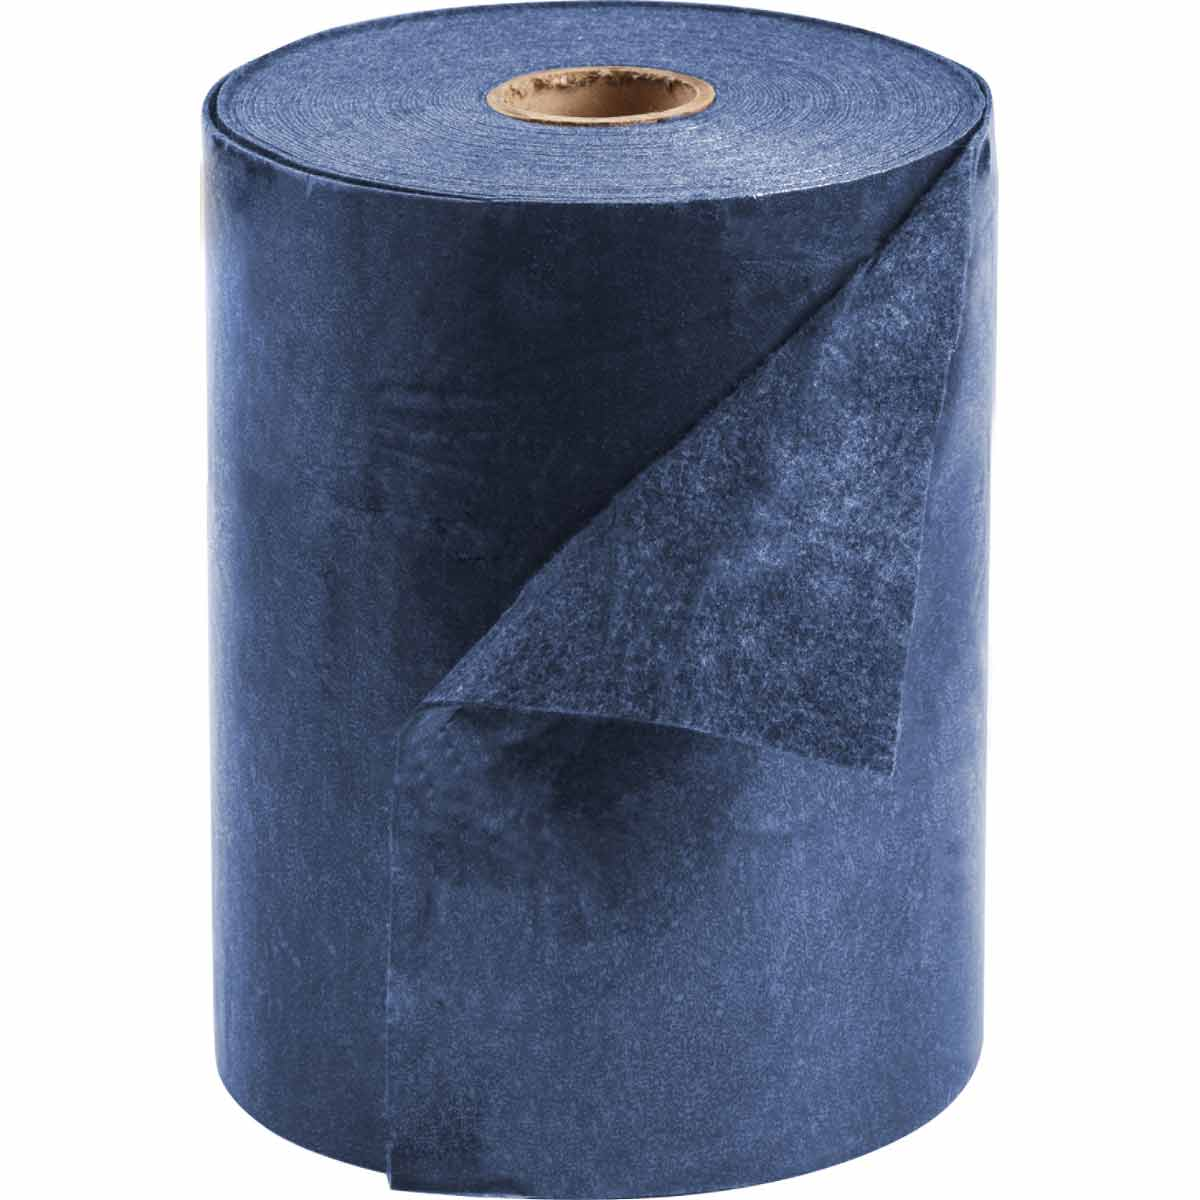 SPC® AD15100 Barrier Backed Mediumweight Adhesive Absorbent Mat, 100 ft L x 15 in W, 11 gal Absorption, Polypropylene